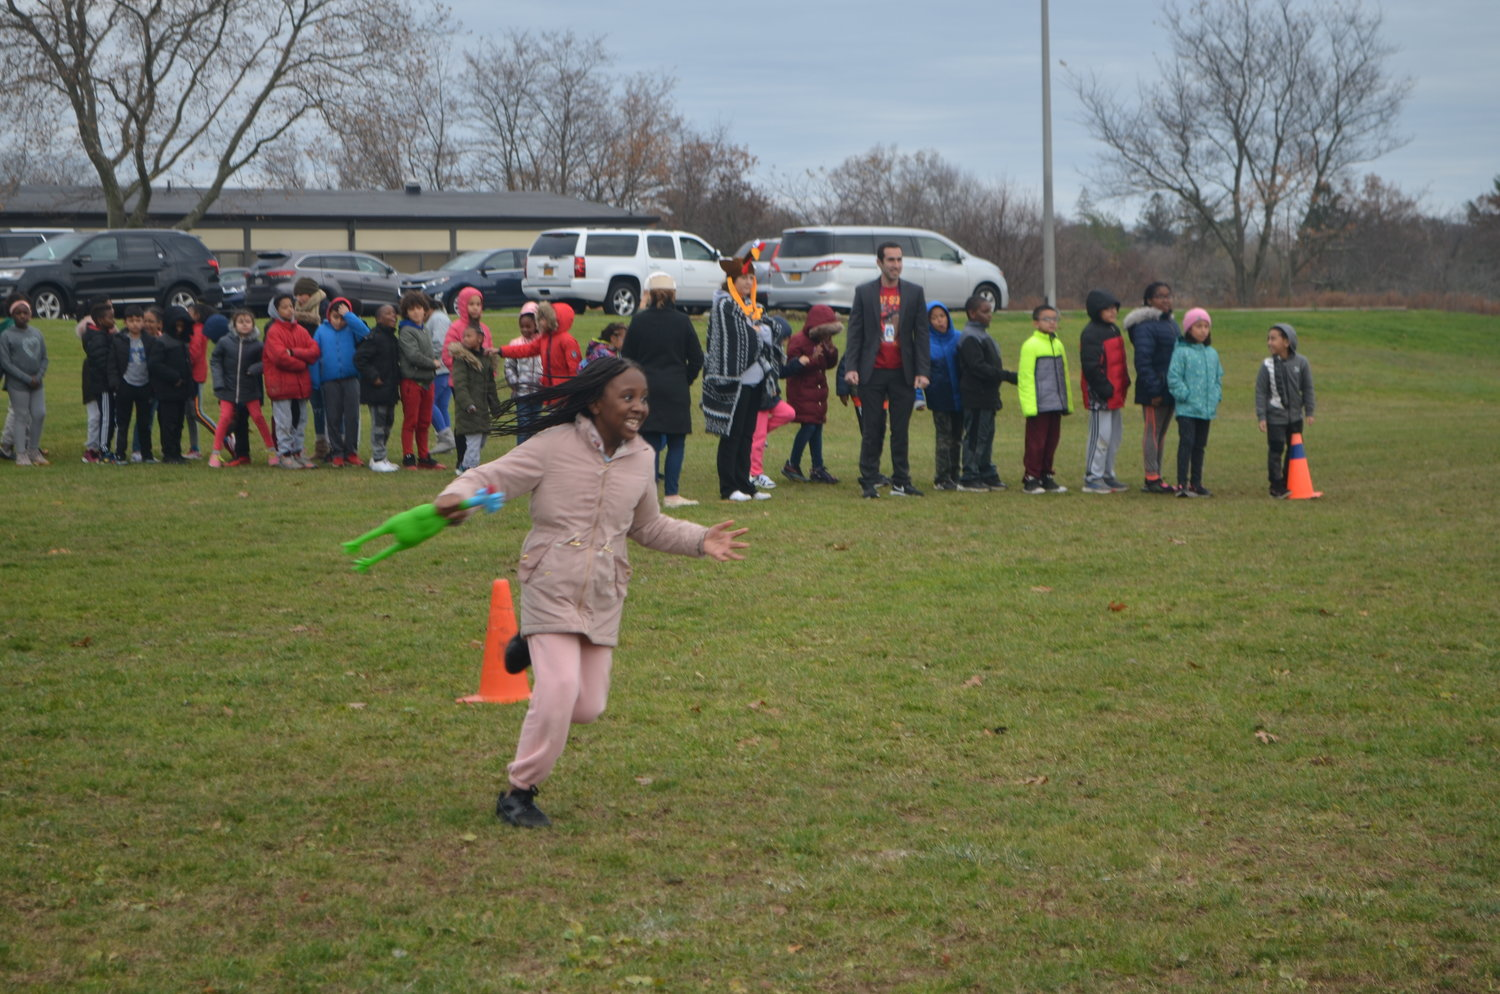 Kamryn Johnson, a Brookside Elementary School student from Mrs. Seltzer's third grade class, ran with a rubber chicken as part of the school's first Turkey Trot.